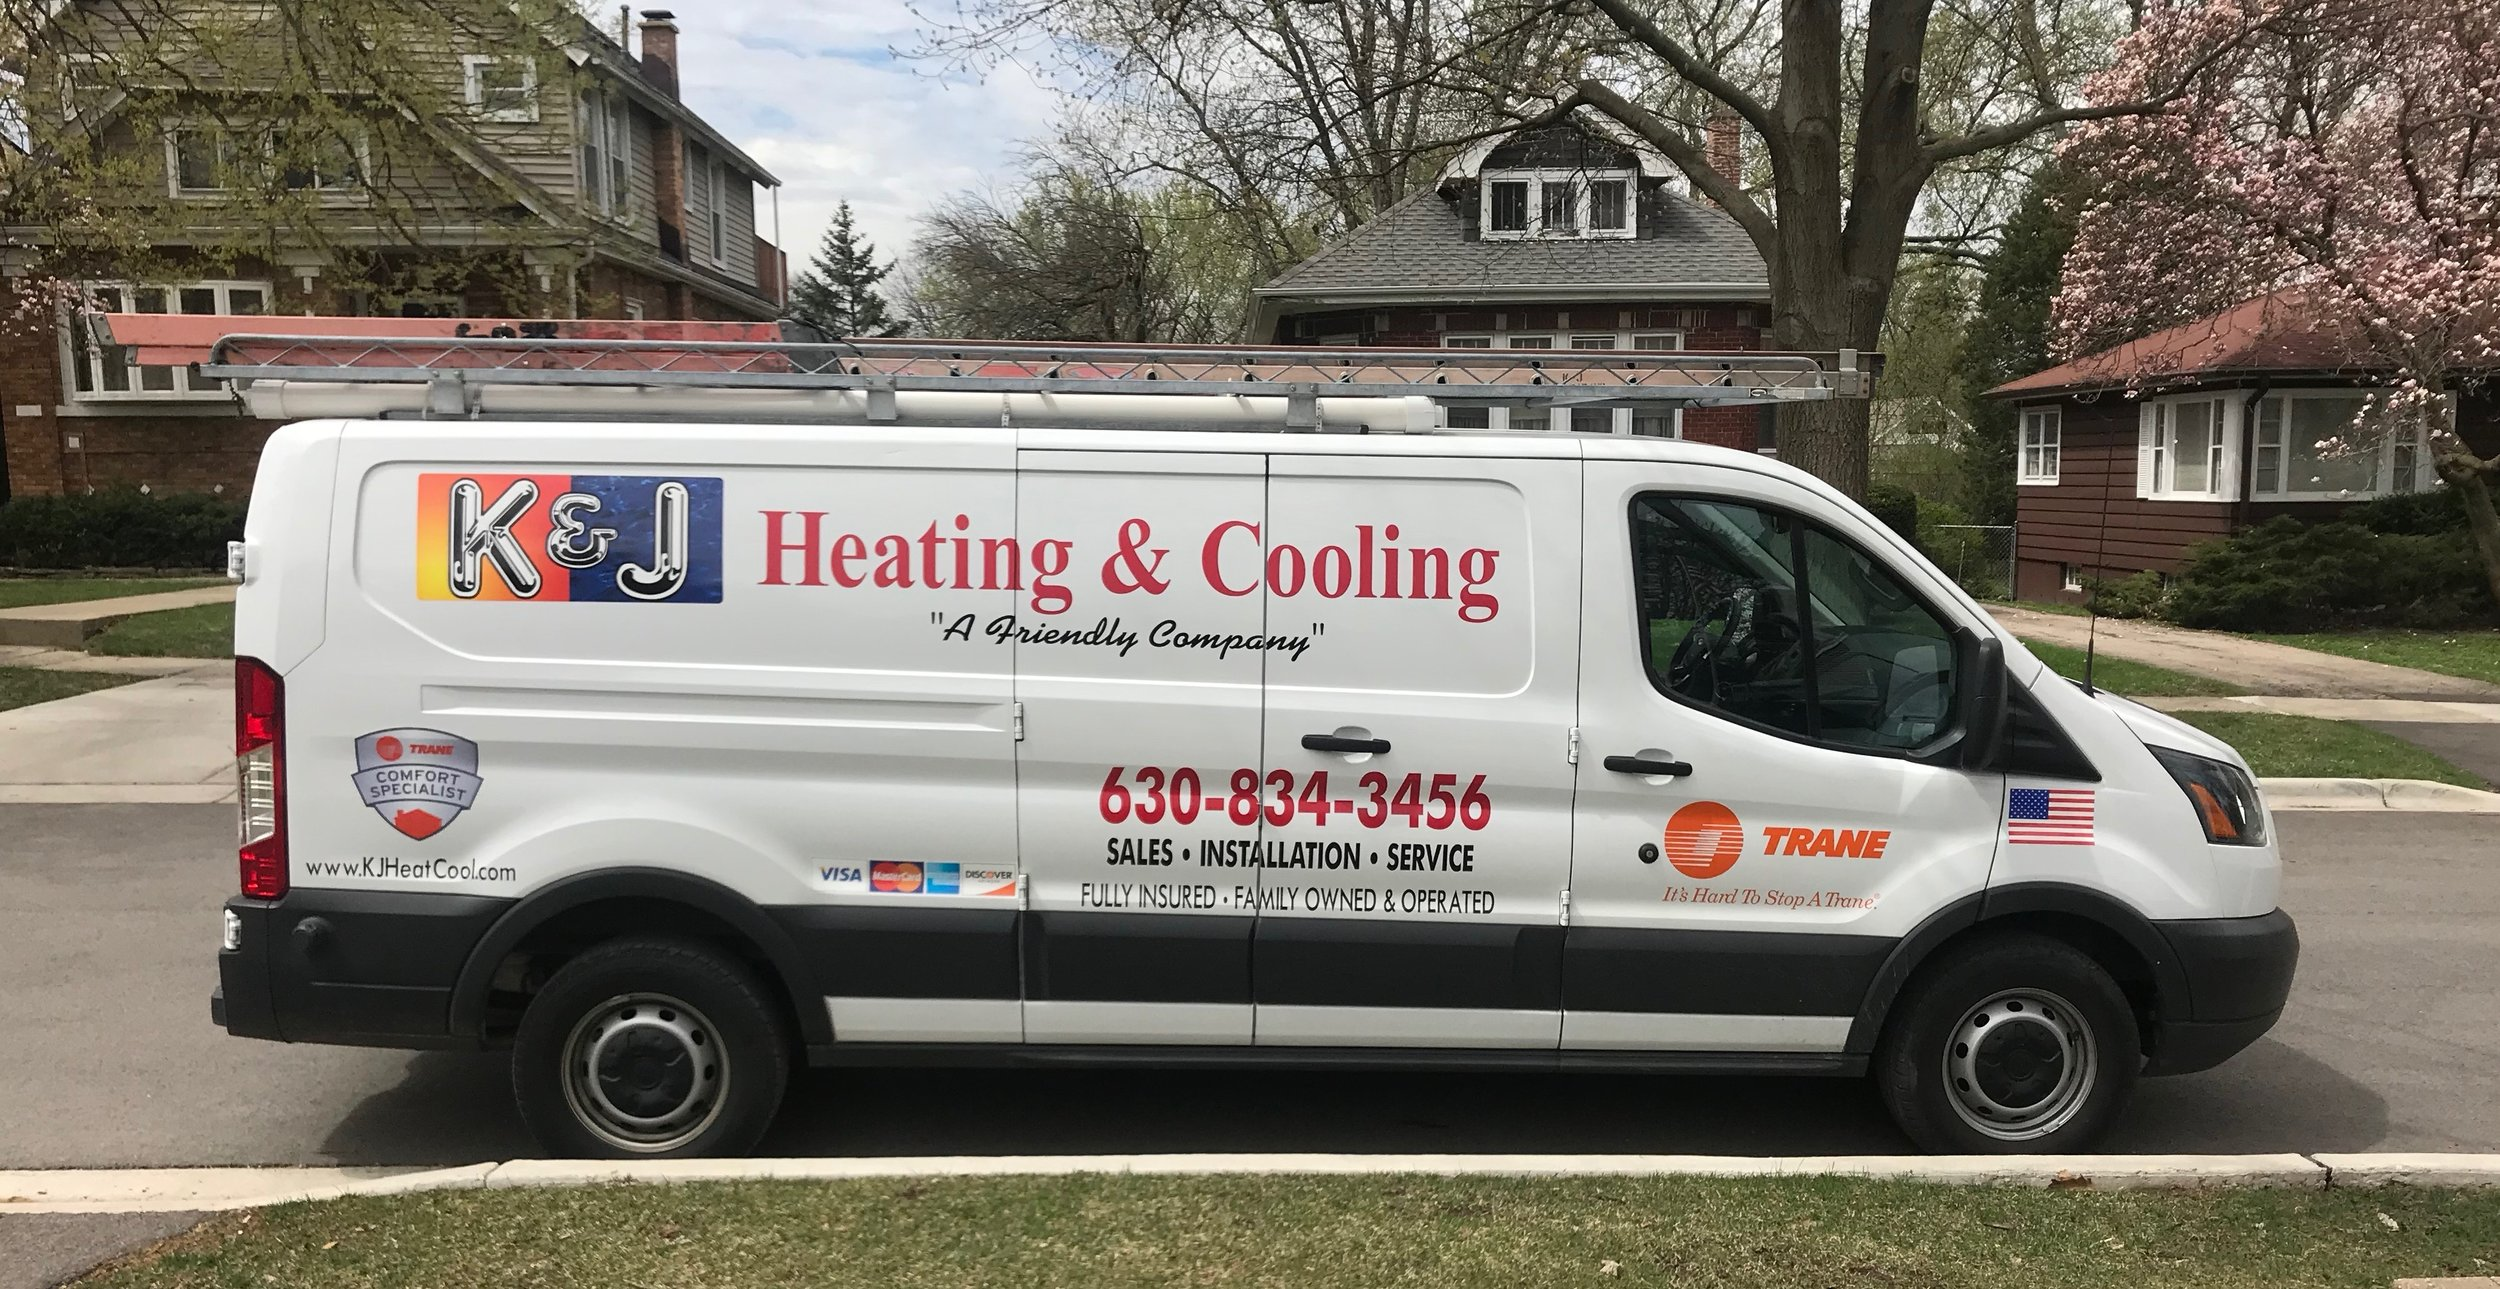 Best HVAC Company, K & J Heating and Cooling, Inc., Servicing DuPage County Since 1998.